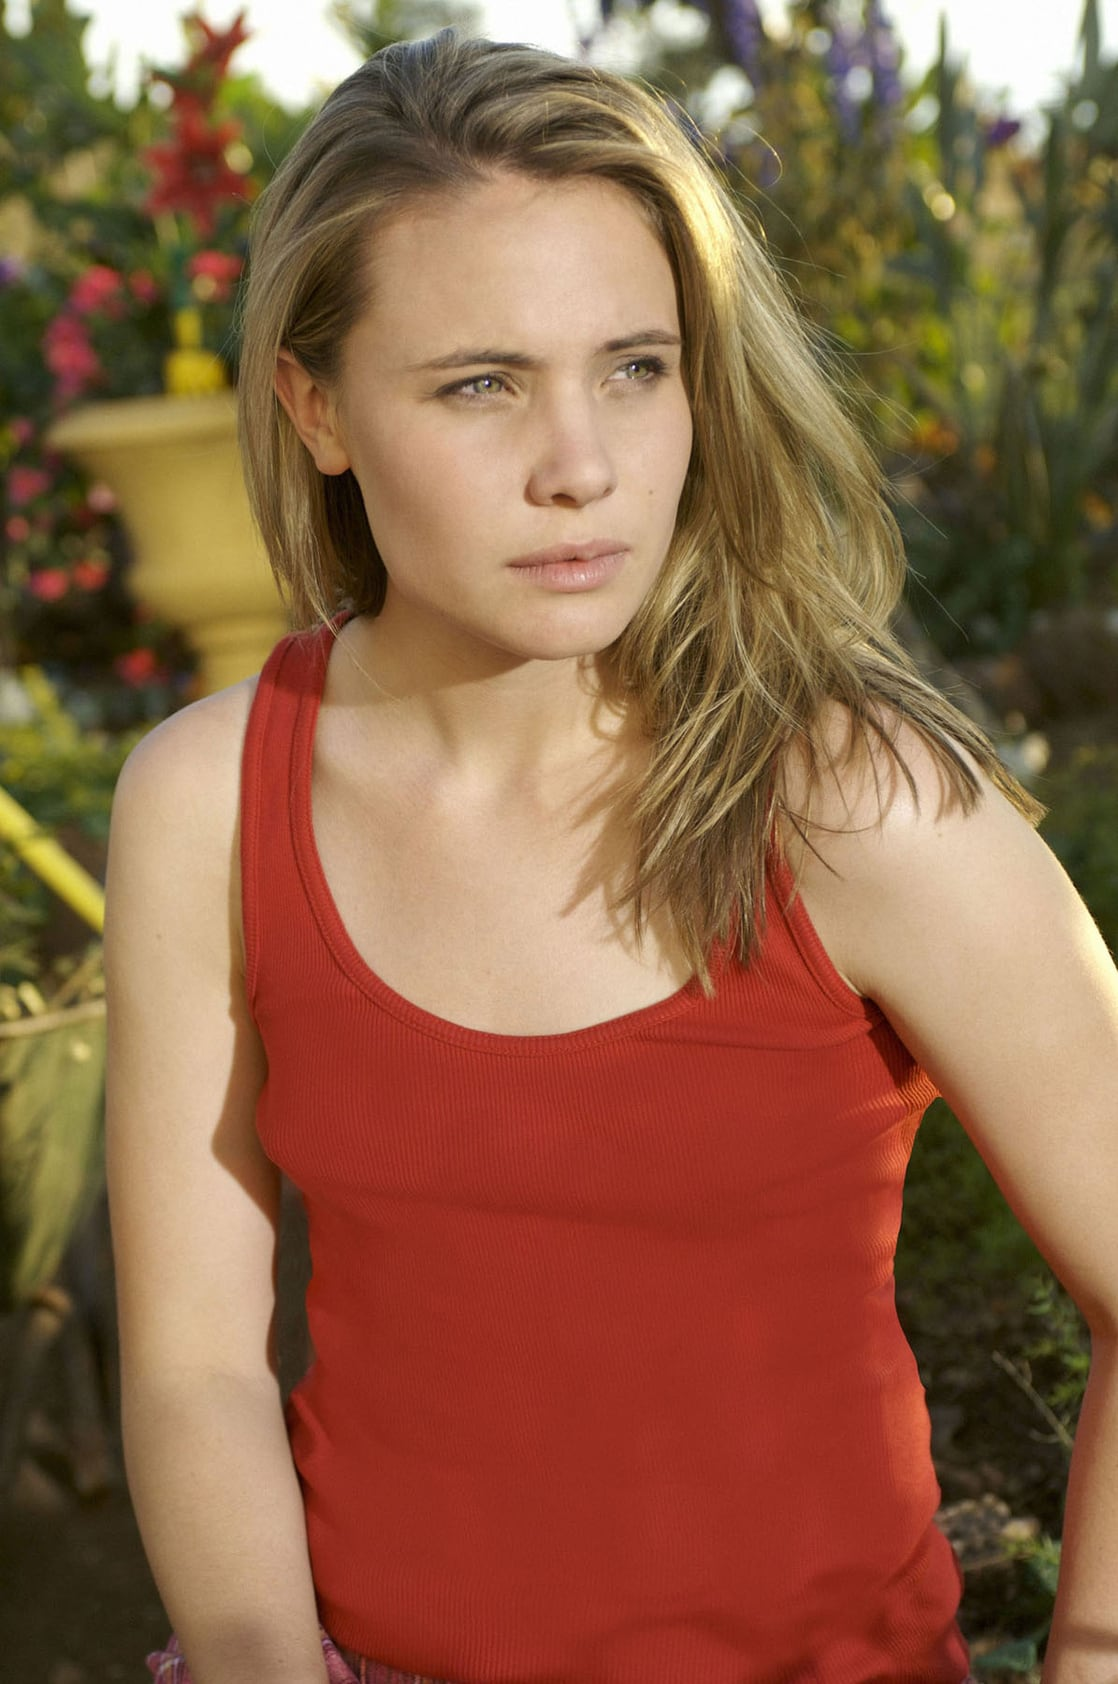 leah pipes - photo #6